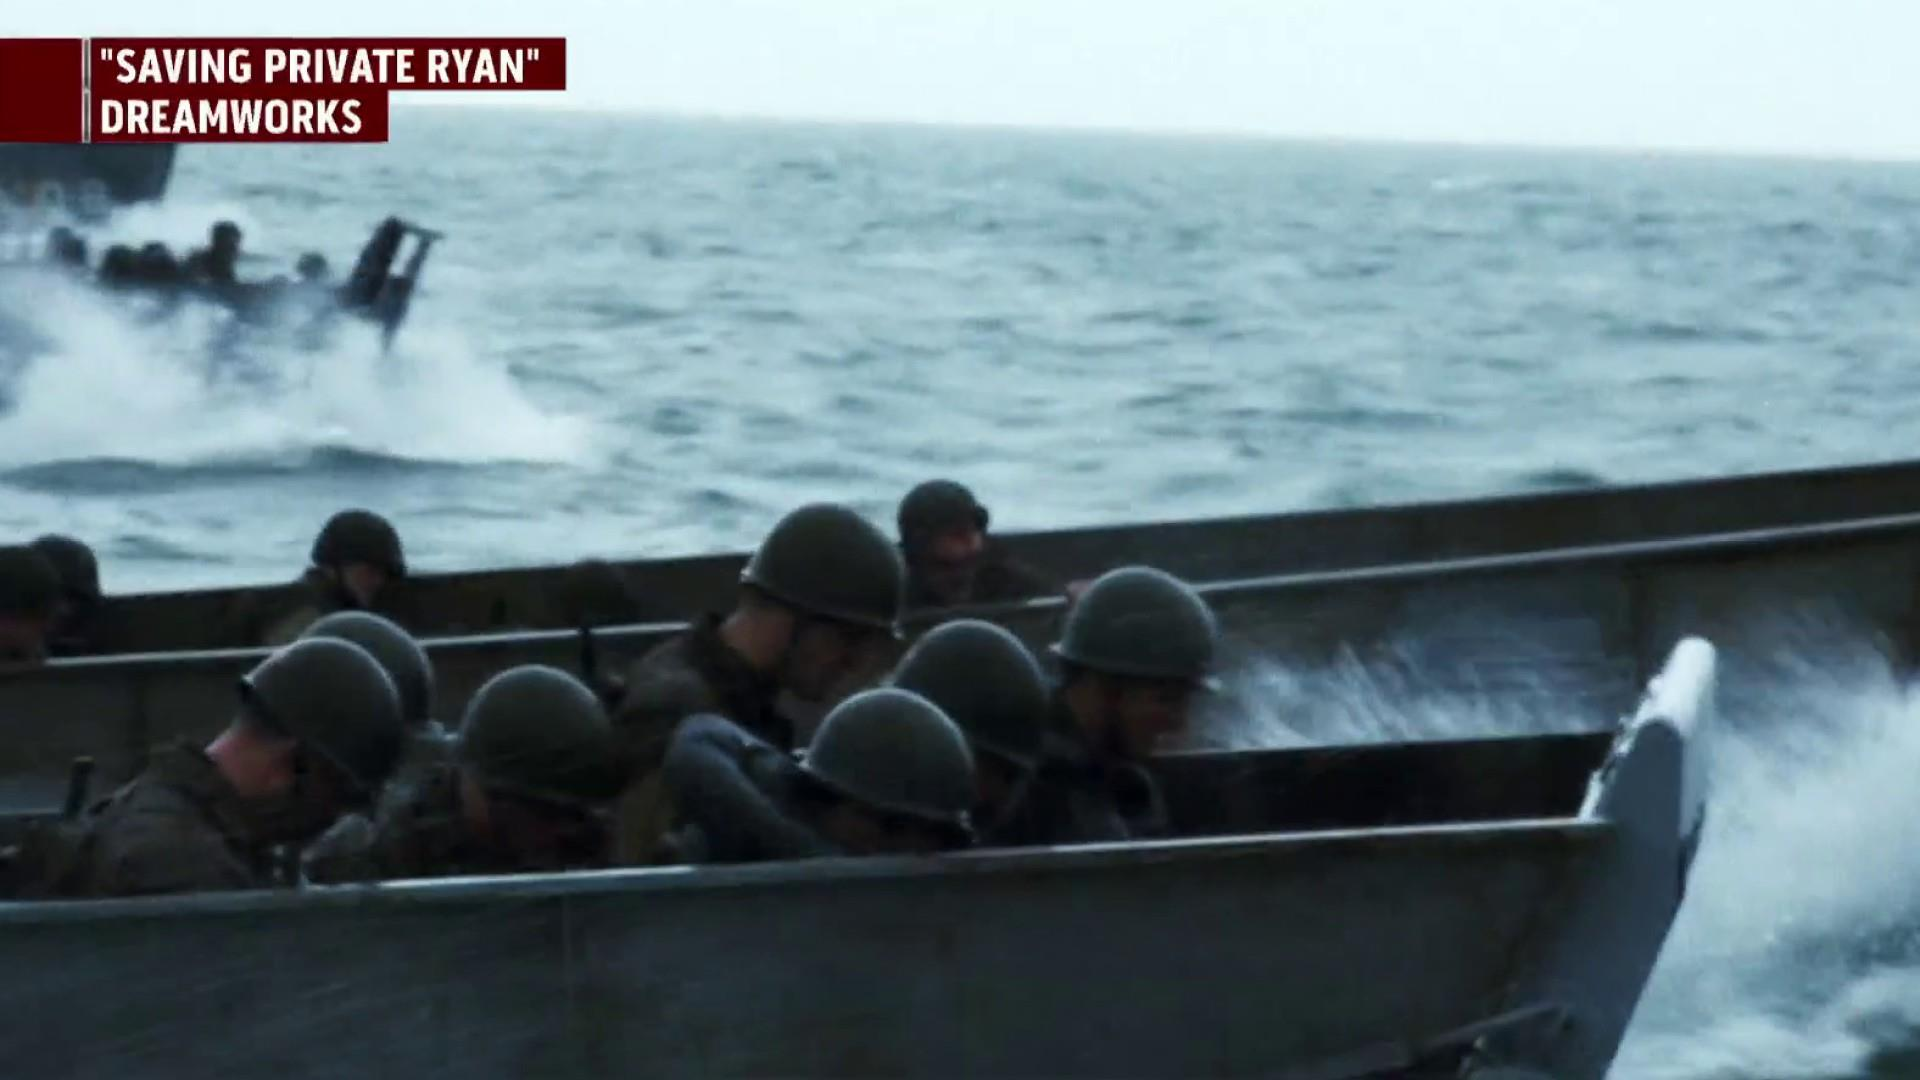 'Saving Private Ryan' returns to theaters on D-Day anniversary